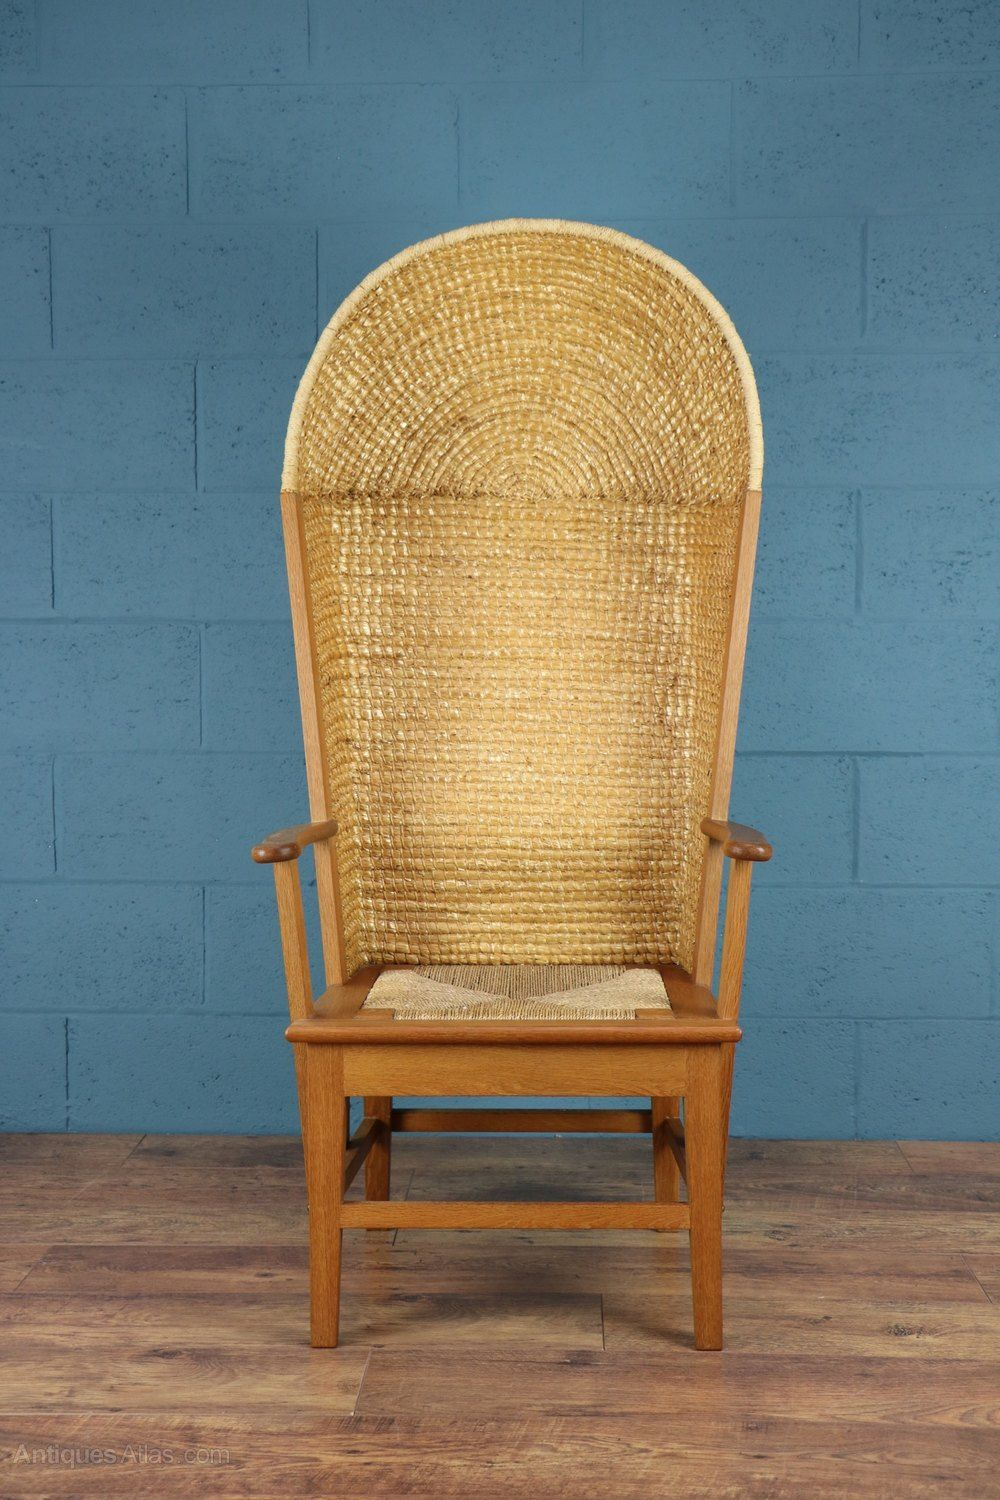 Antiques Atlas - Gentleman's Hooded Orkney Chair - Antiques Atlas - Gentleman's Hooded Orkney Chair Orkney Chairs